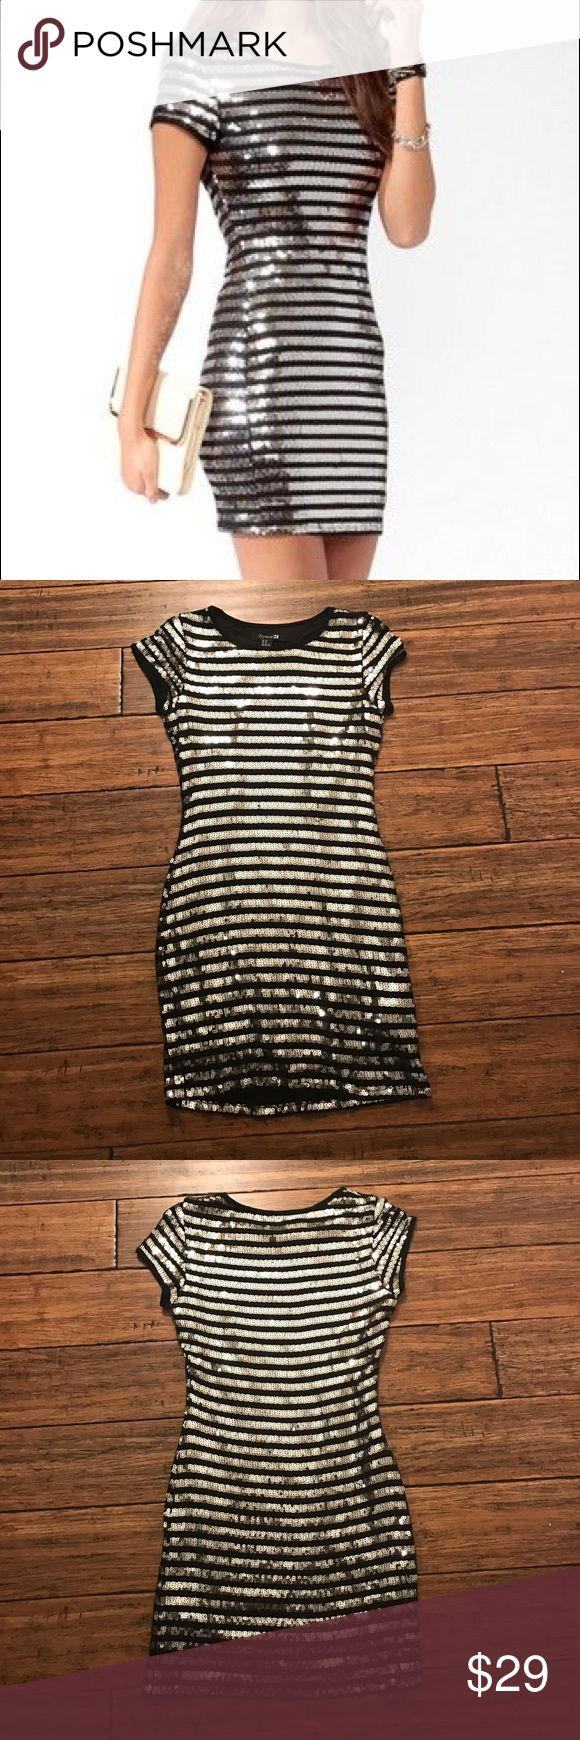 """Forever 21 Black and Silver Striped Sequin Dress F21 striped Sequin dress. Only worn once, perfect for a special occasion! Approx. 31.5"""" long. 12.5"""" across waist, 15"""" armpit to armpit, and 15"""" across hips. Shell: 87% rayon, 3% spandex/elastane. Lining: 100% polyester. This has stretch to it. Forever 21 Dresses Mini"""